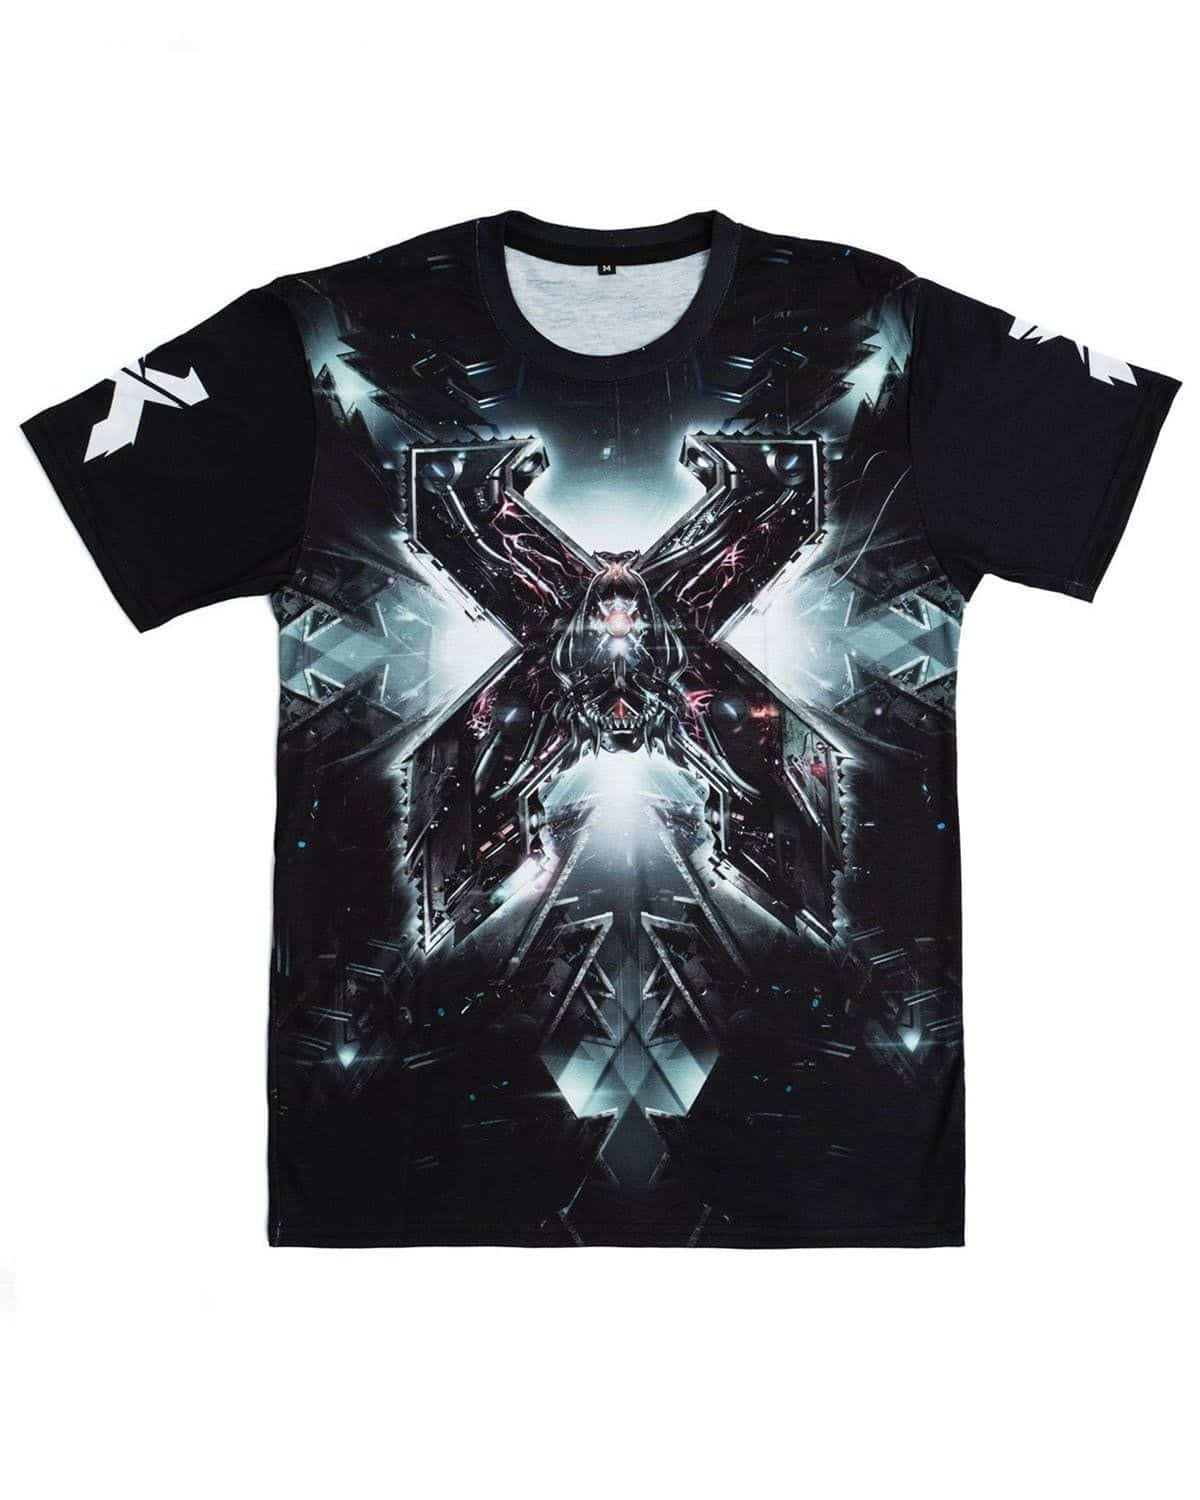 Excision 'The Paradox 2018' Dye Sub Tour T-Shirt - Black/Grey